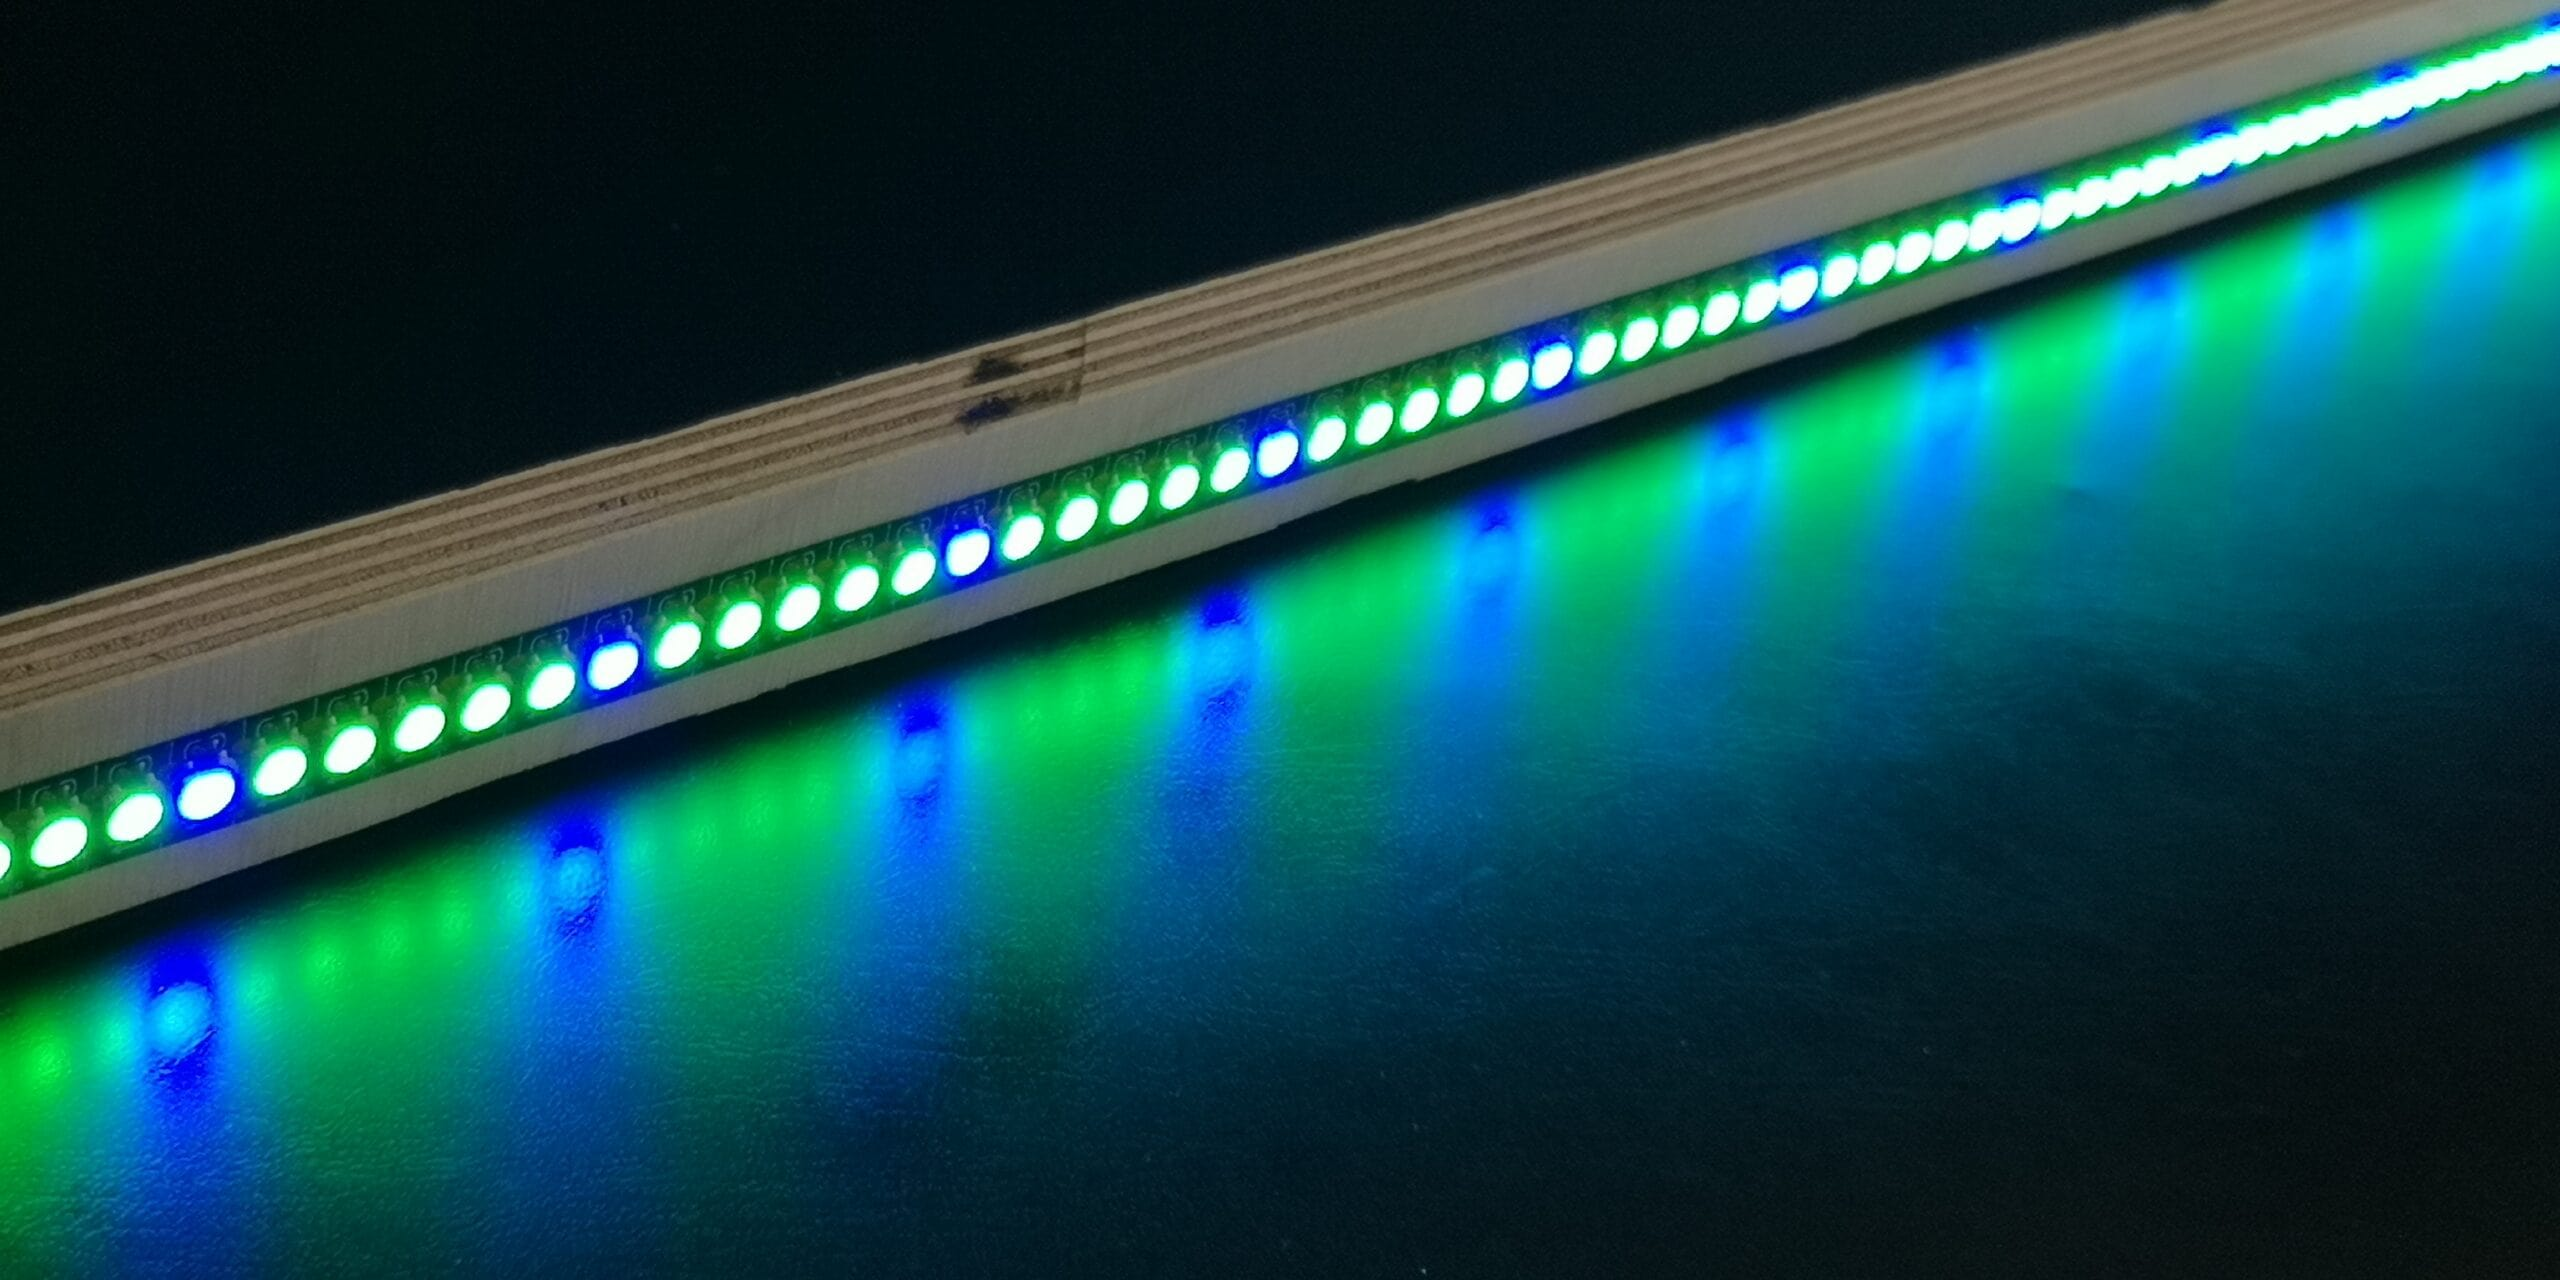 Neopixel Farbmuster mit for-schleife